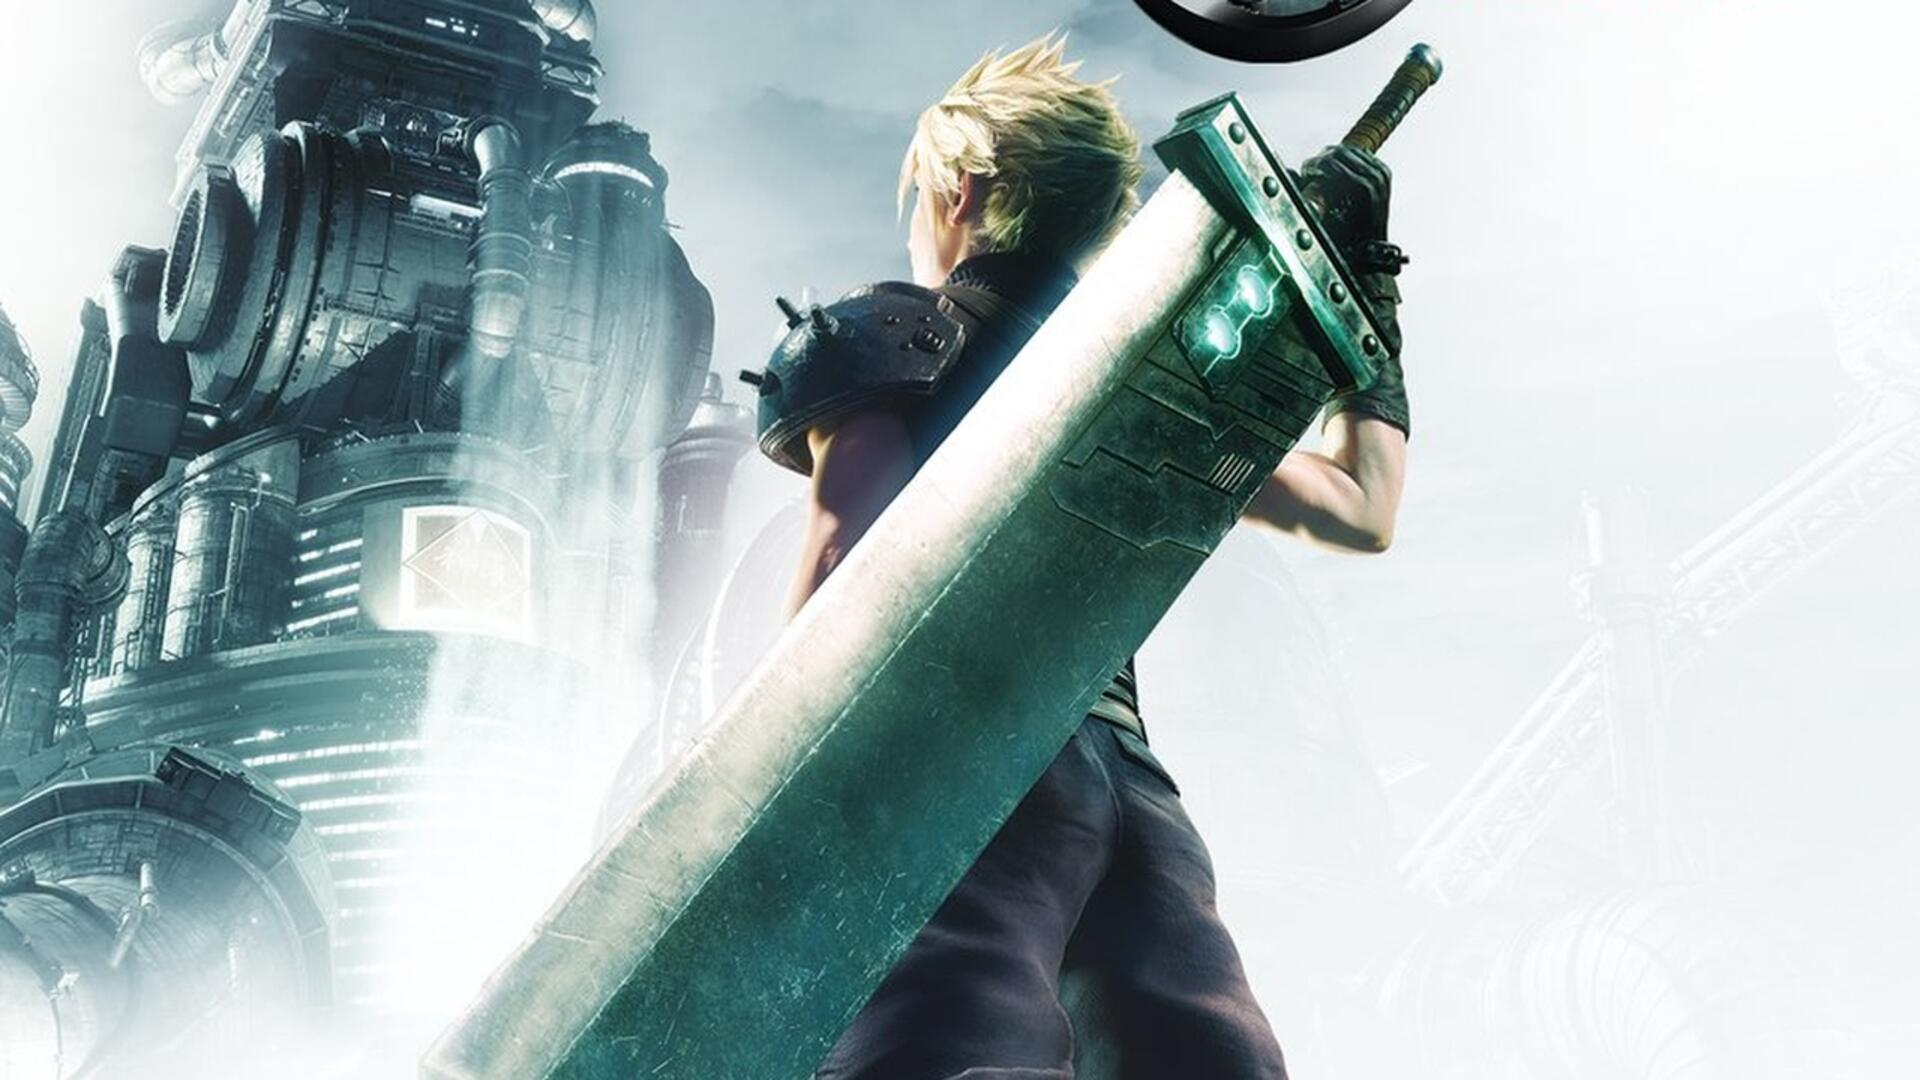 Final Fantasy 7 Remake S Box Art Is A Callback To The Original